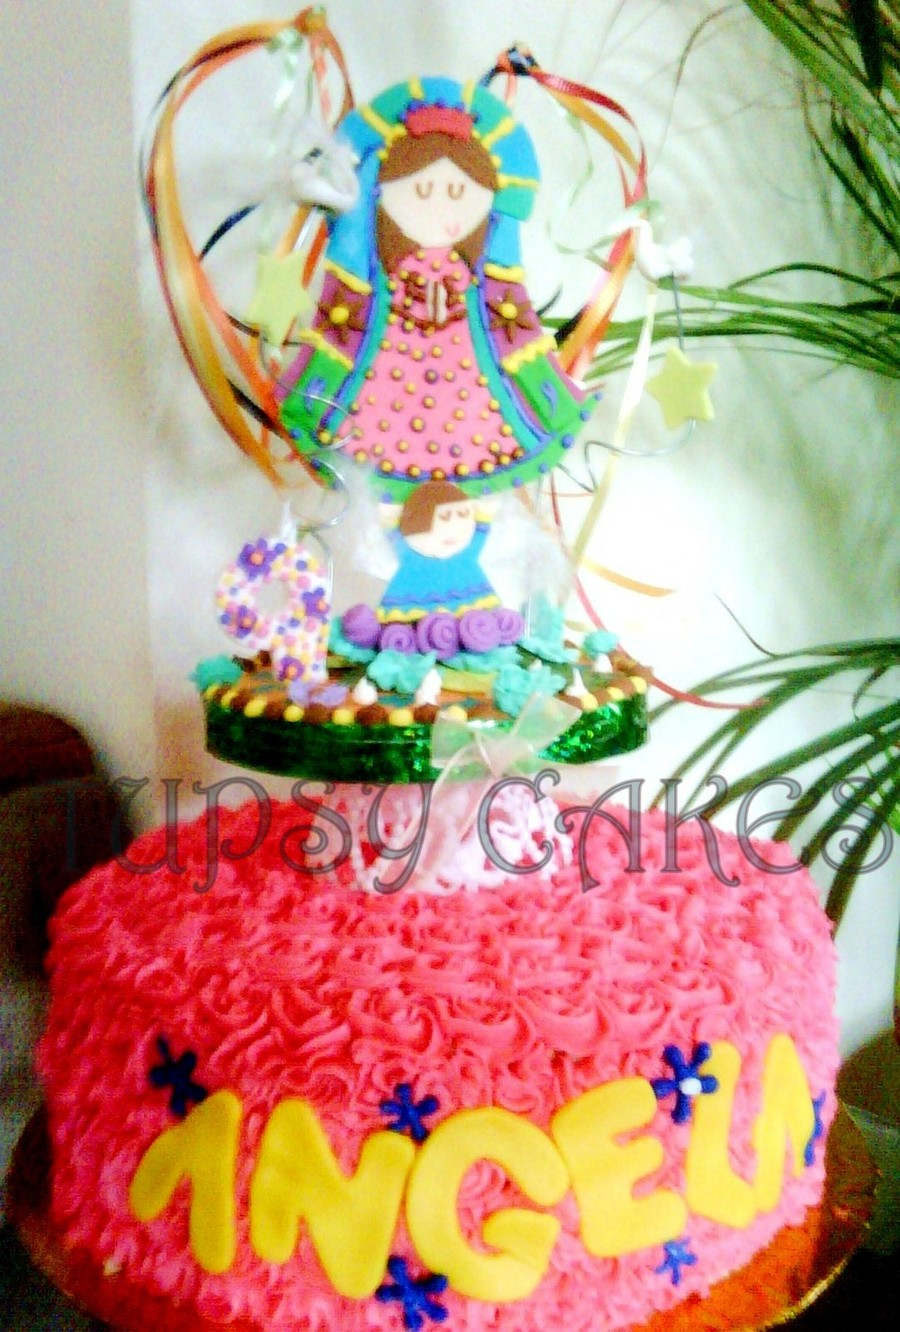 Virgencita Plis on Cake Central